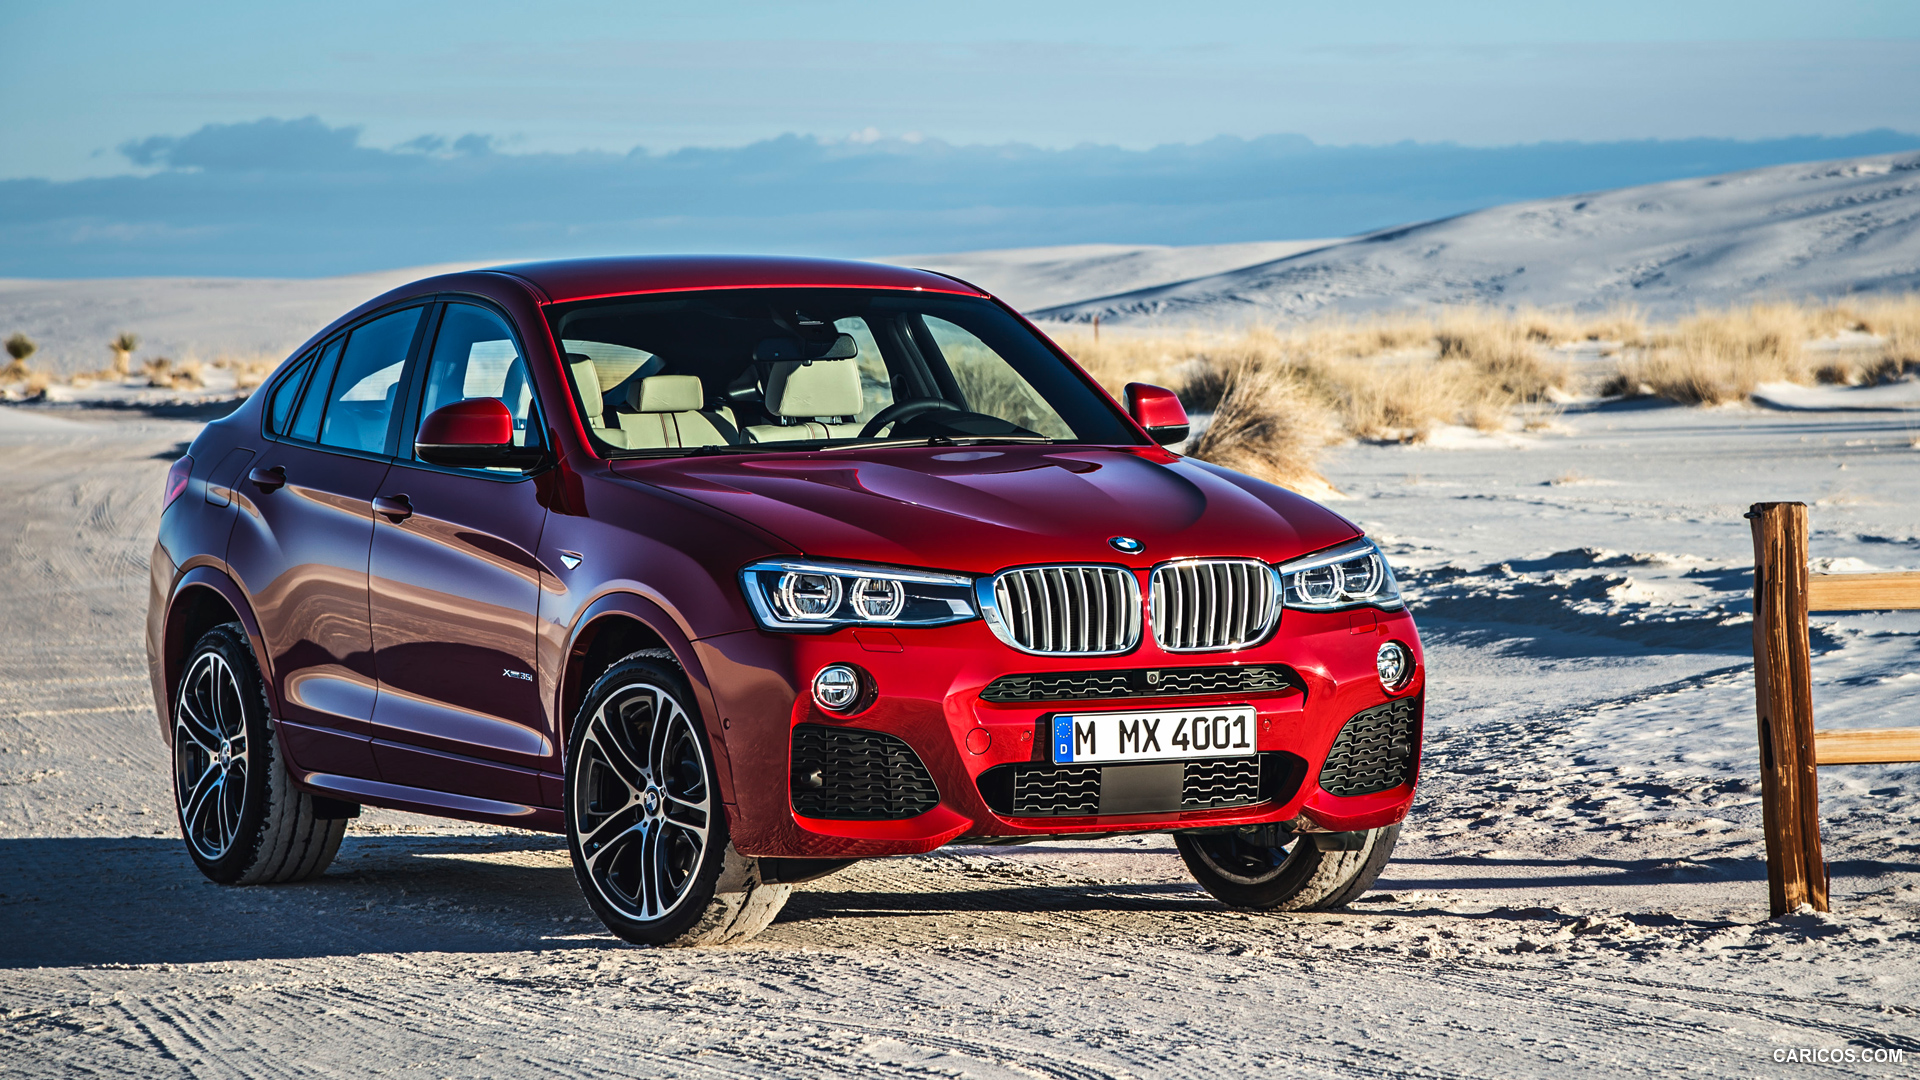 1920x1080 - BMW X4 Wallpapers 15